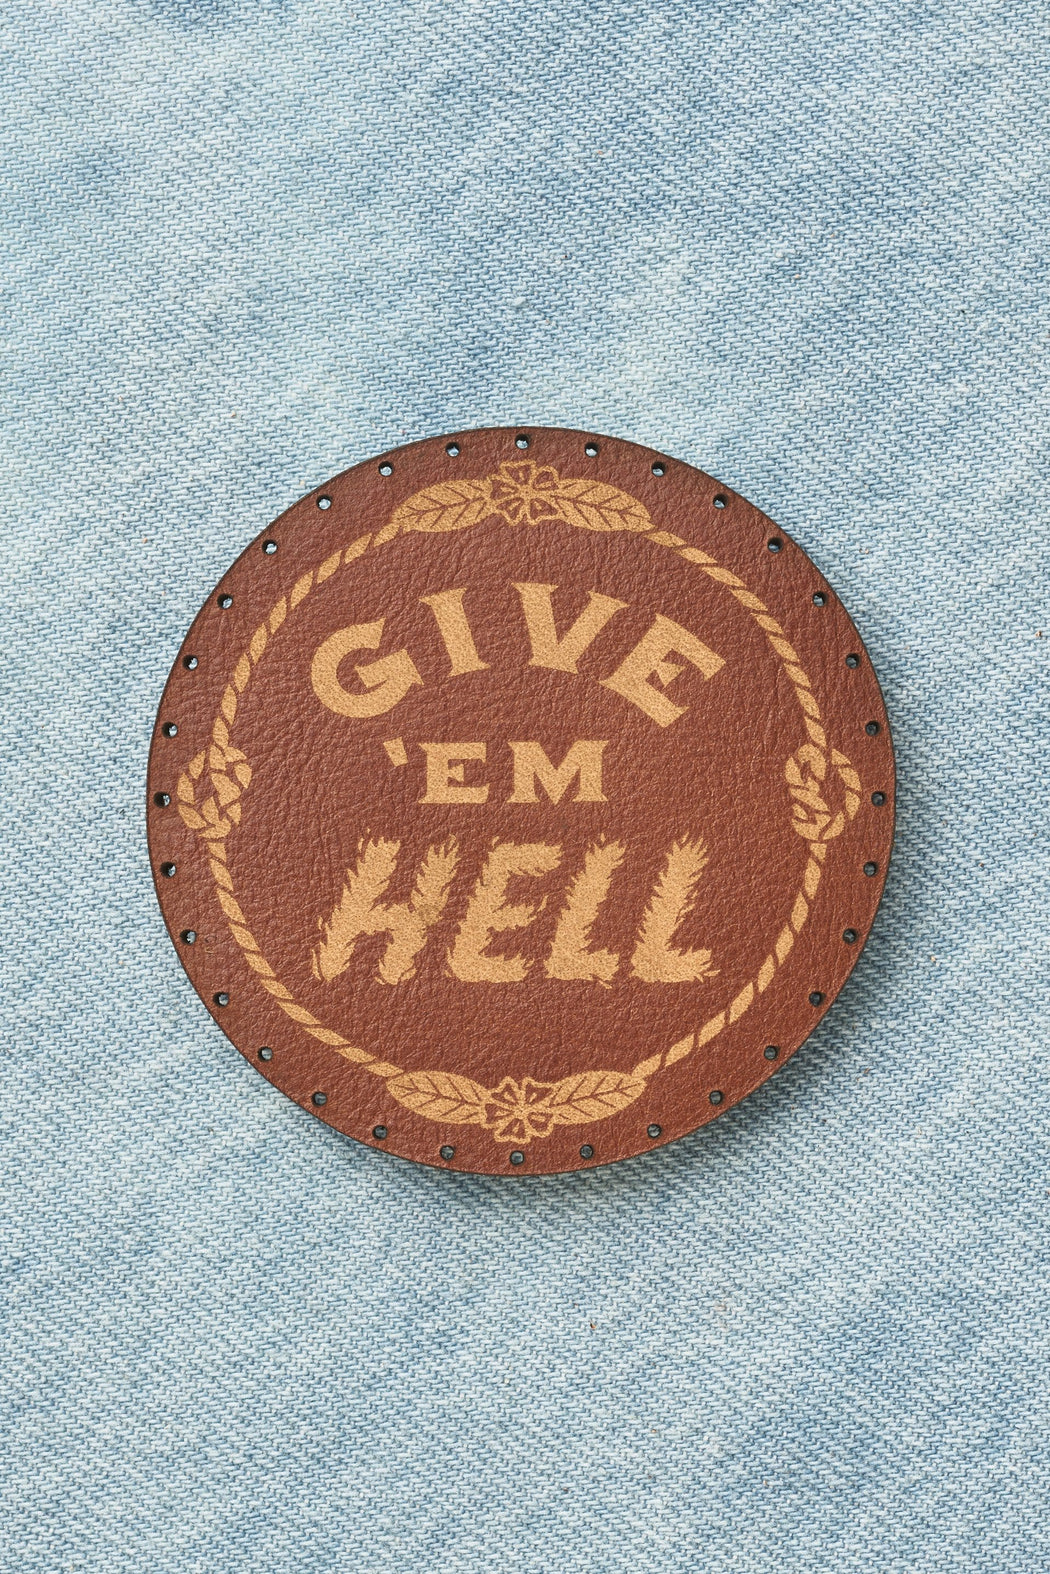 Give Em Hell Patch - Whiskey